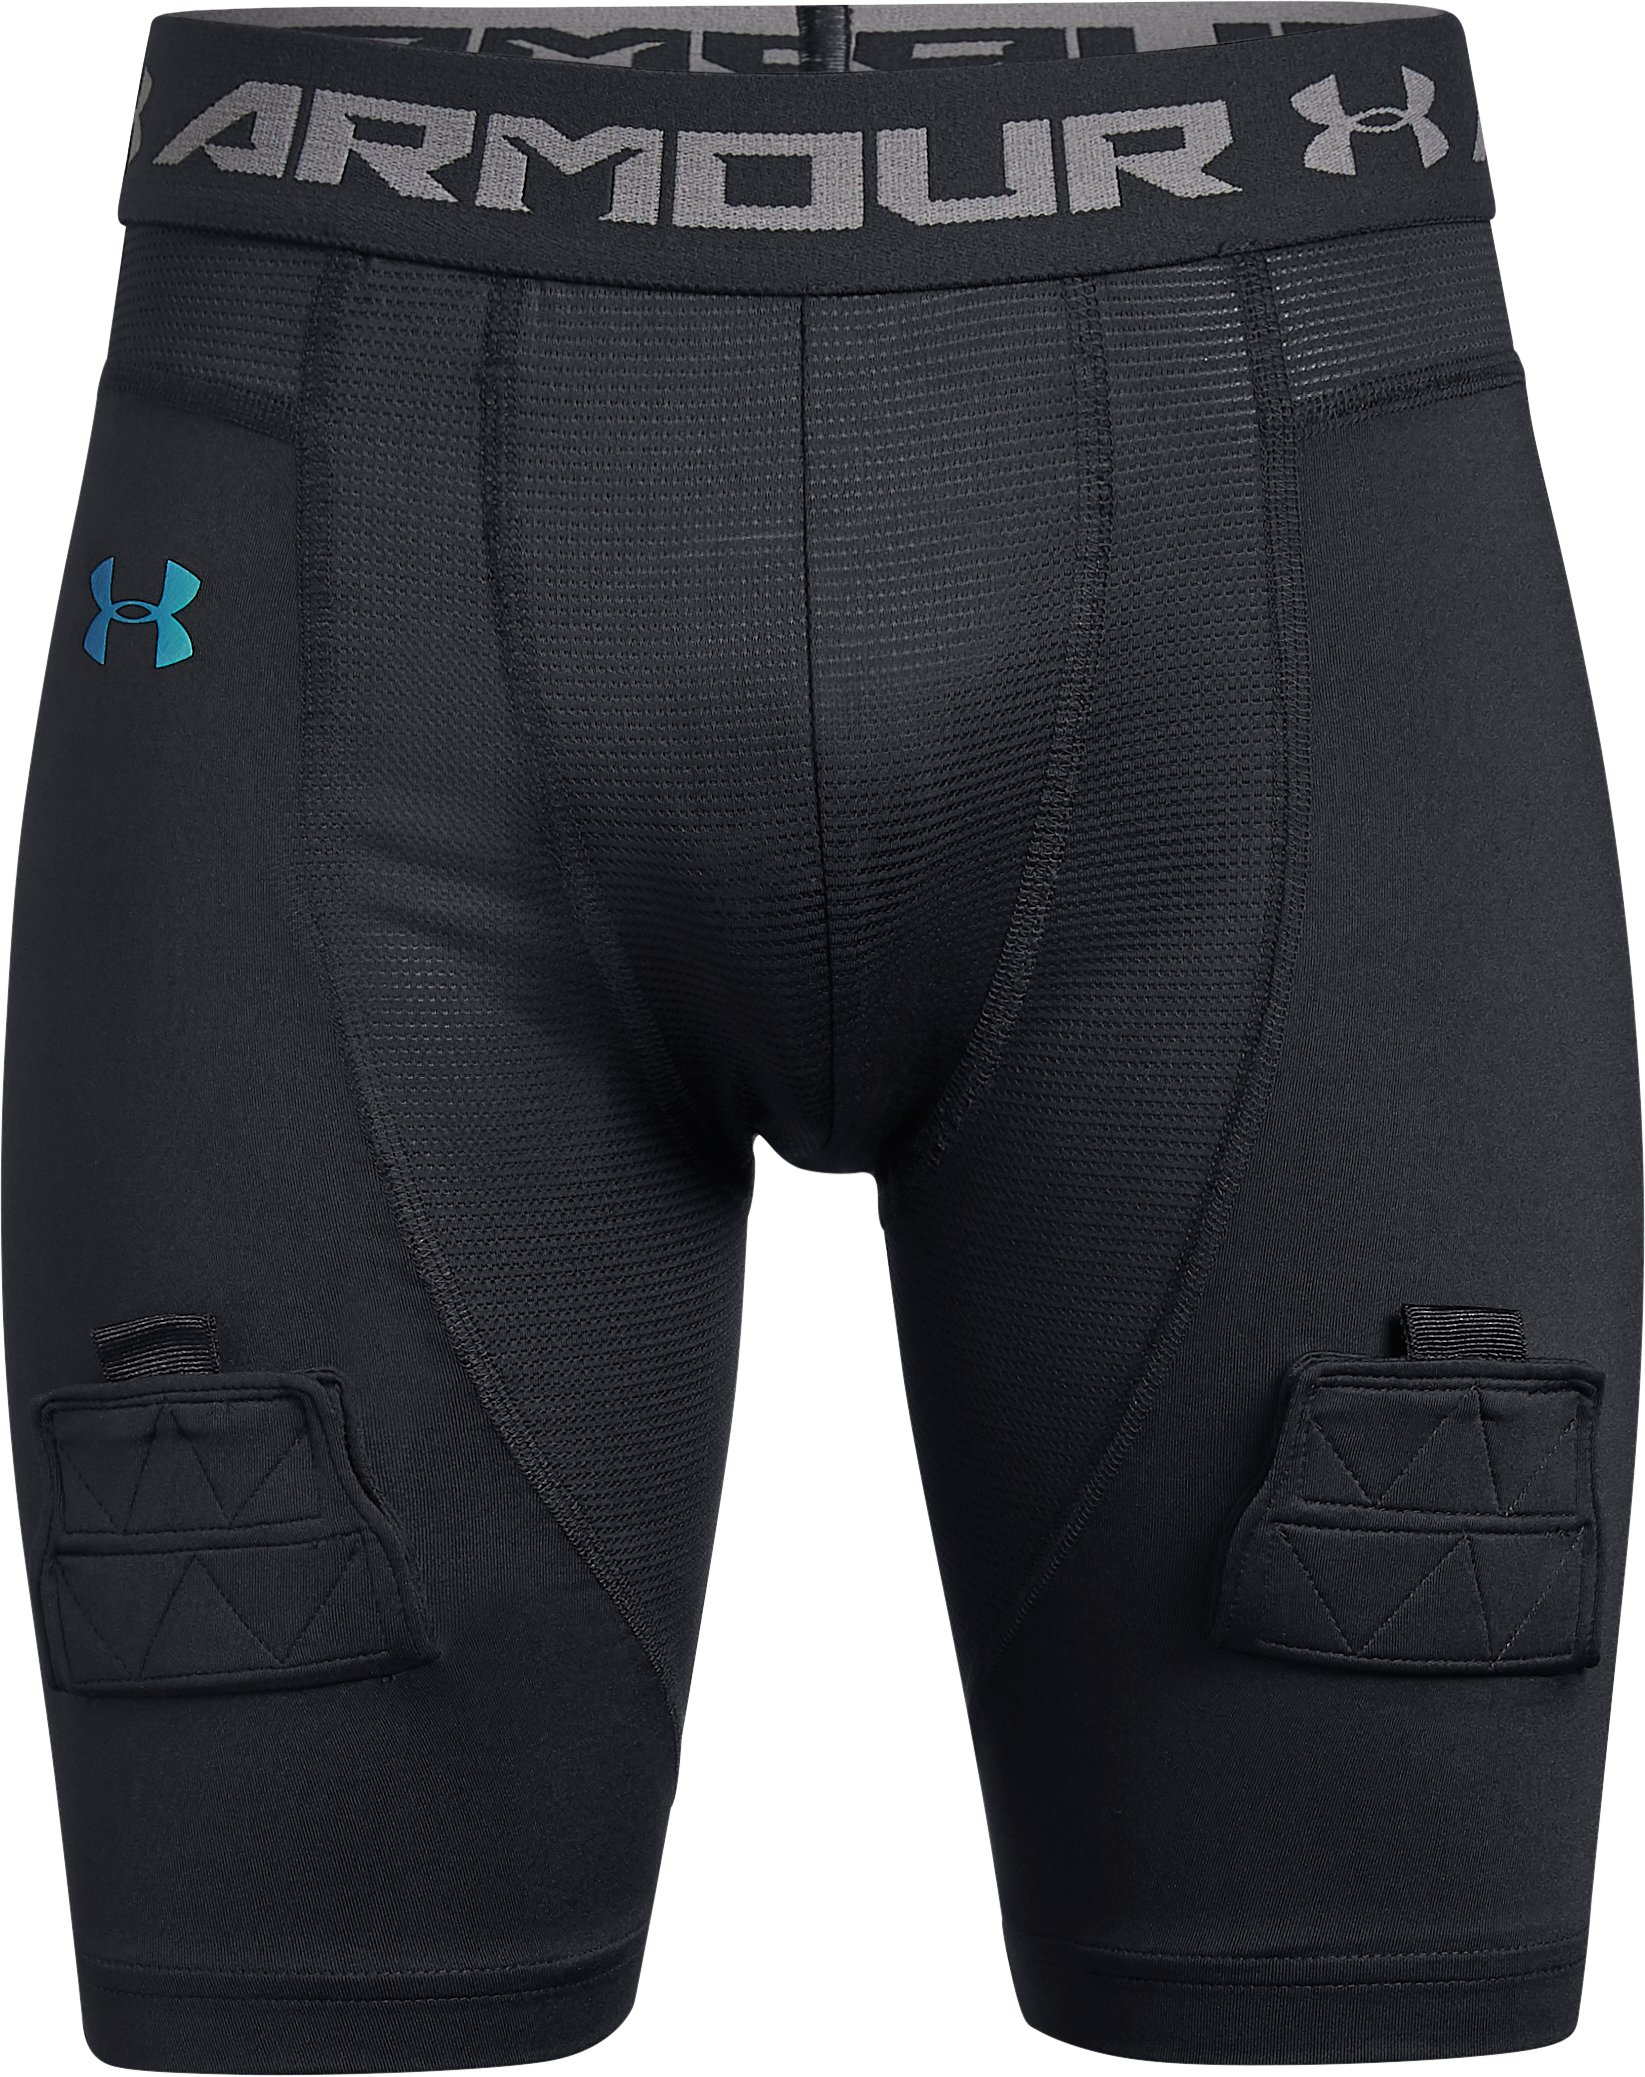 Boys' UA Hockey Shorts, Black ,